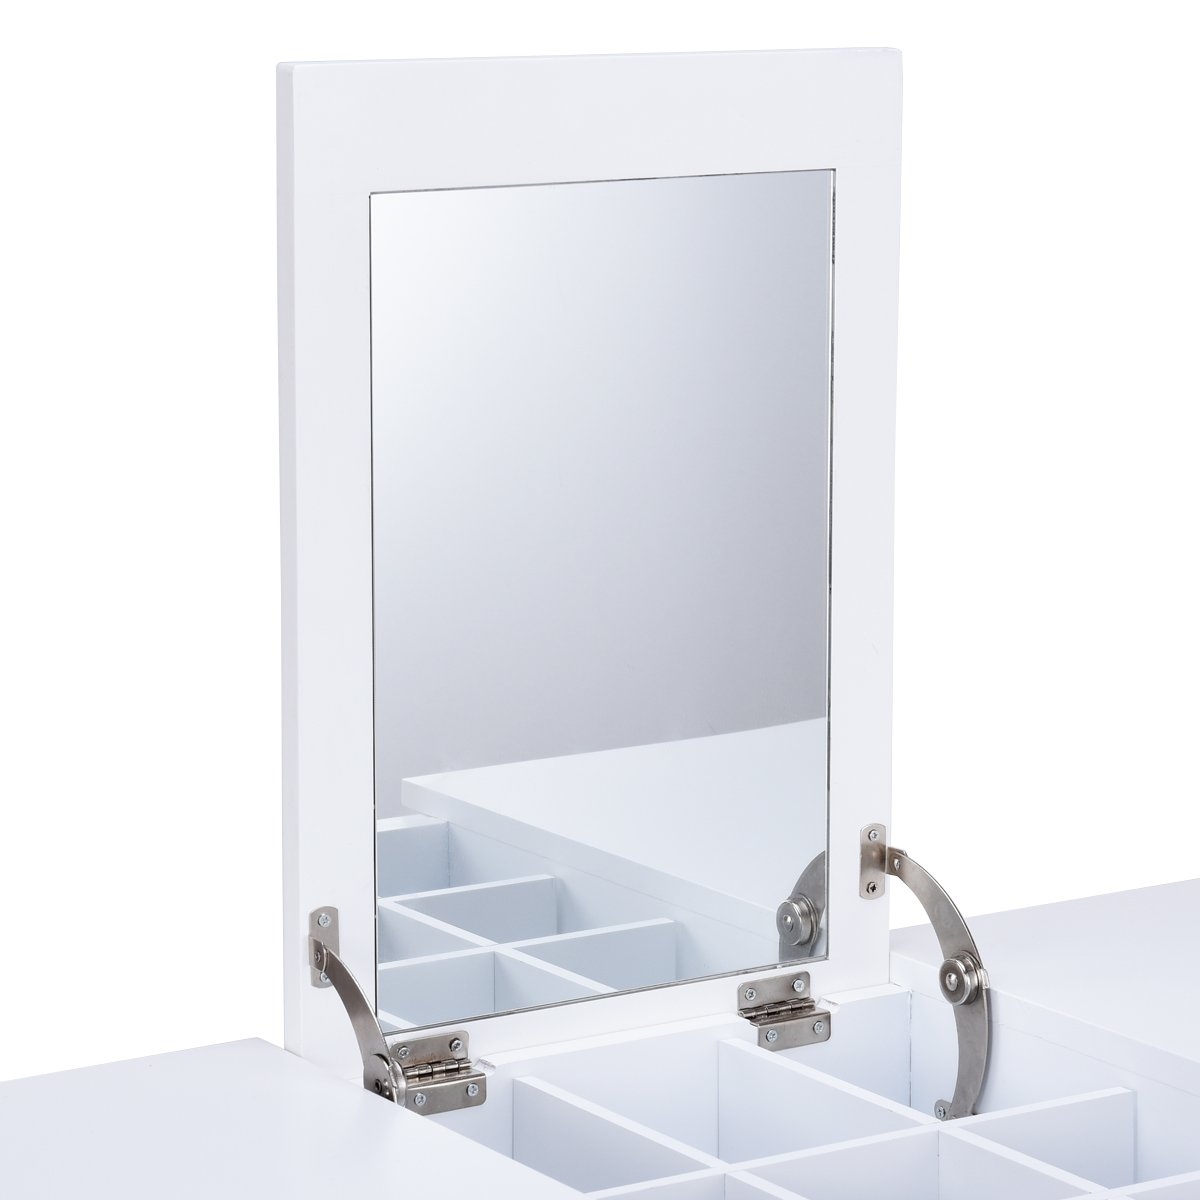 Giantex Vanity Table with Flip Top Mirror with 2 Drawers 1 Removable Organizer Dressing Table Vanity Table, White by Giantex (Image #5)